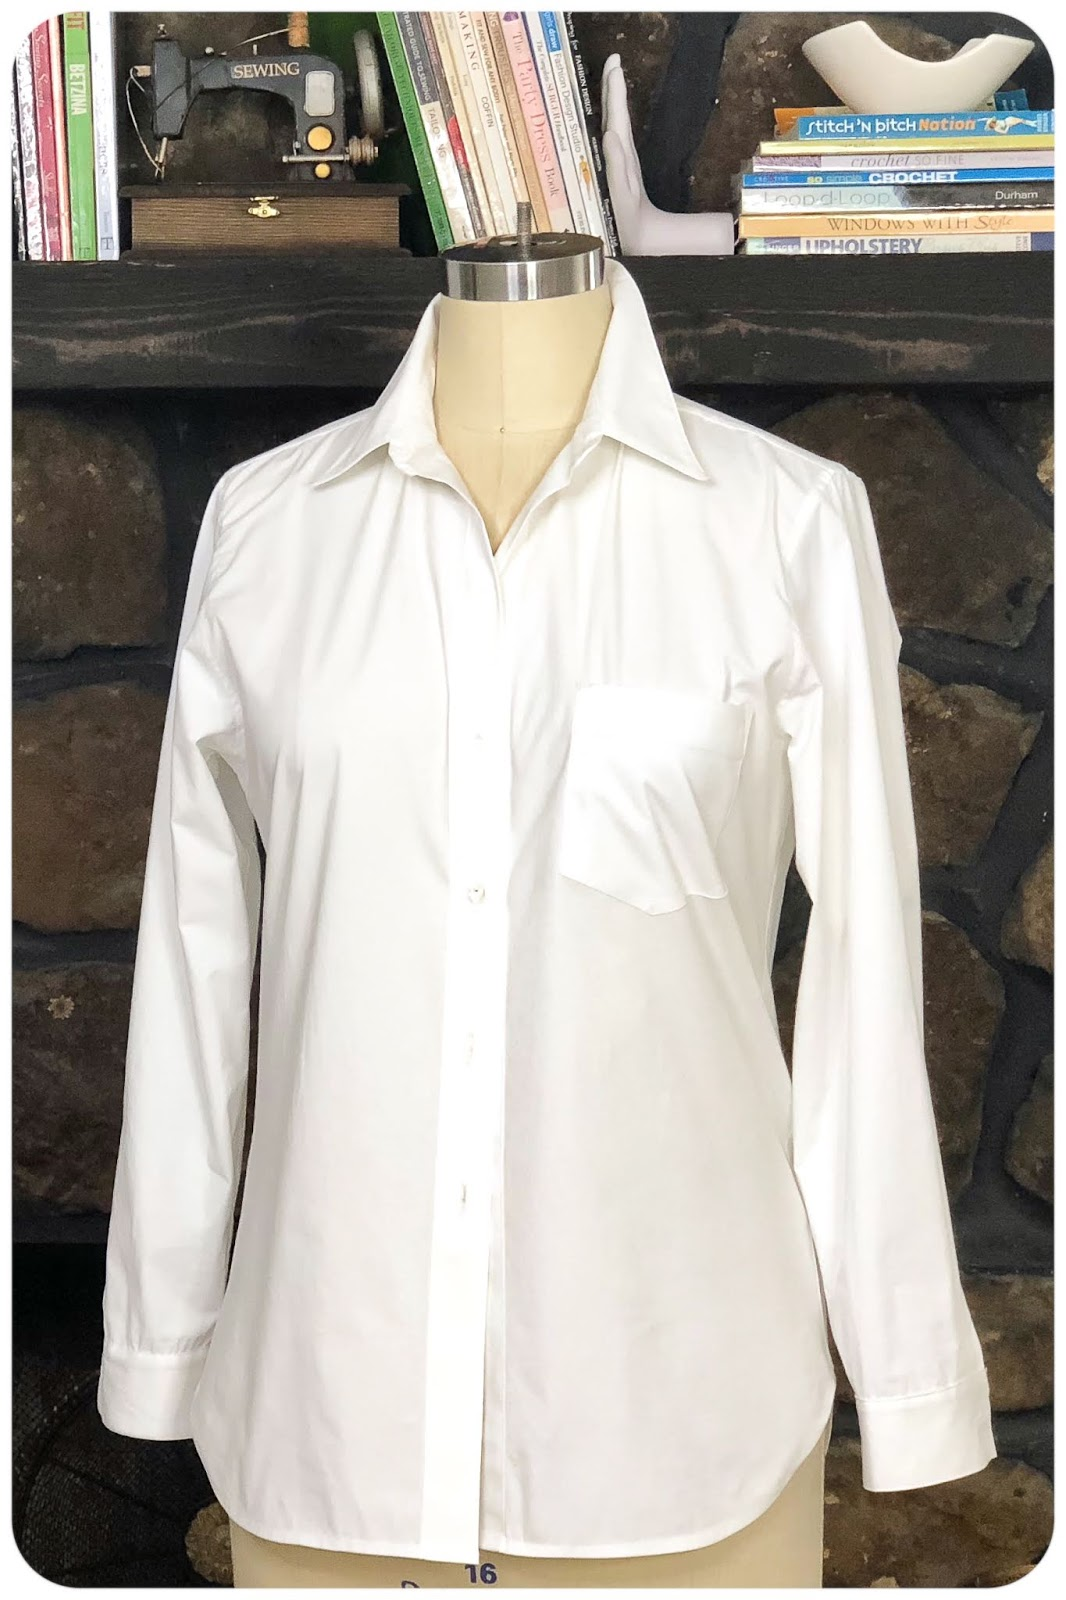 The Classic Button Up Shirt Sew-Along at BERNINA's WeAllSew Blog - Hosted by Erica Bunker